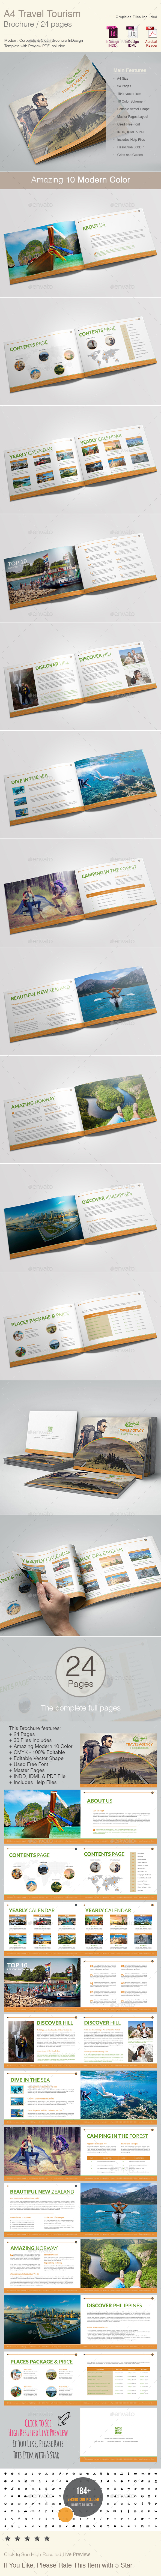 Travel Tourism Brochure Template